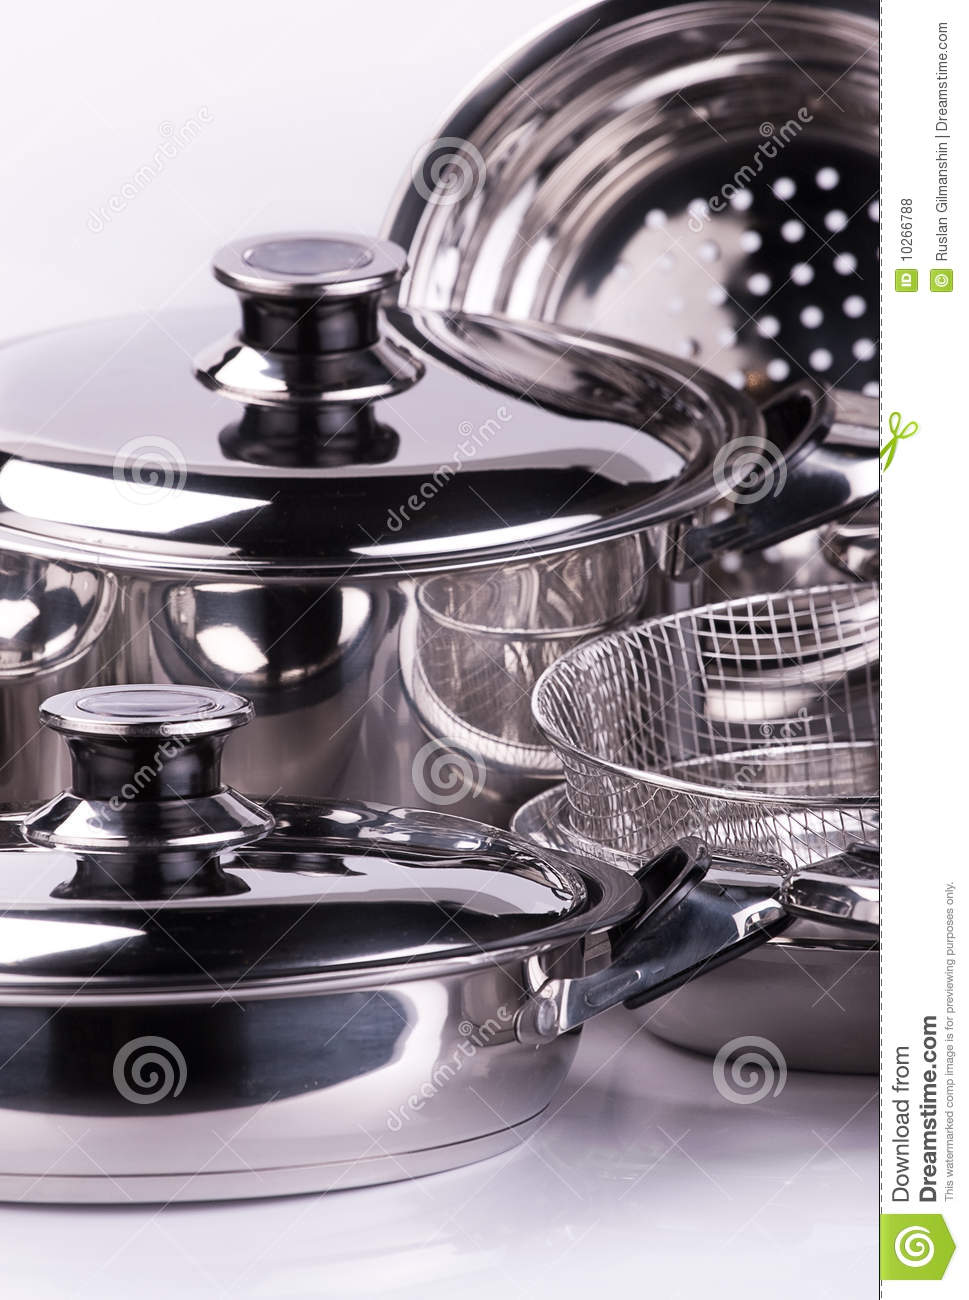 stainless steel cooking pots royalty free stock photos image 10266788. Black Bedroom Furniture Sets. Home Design Ideas